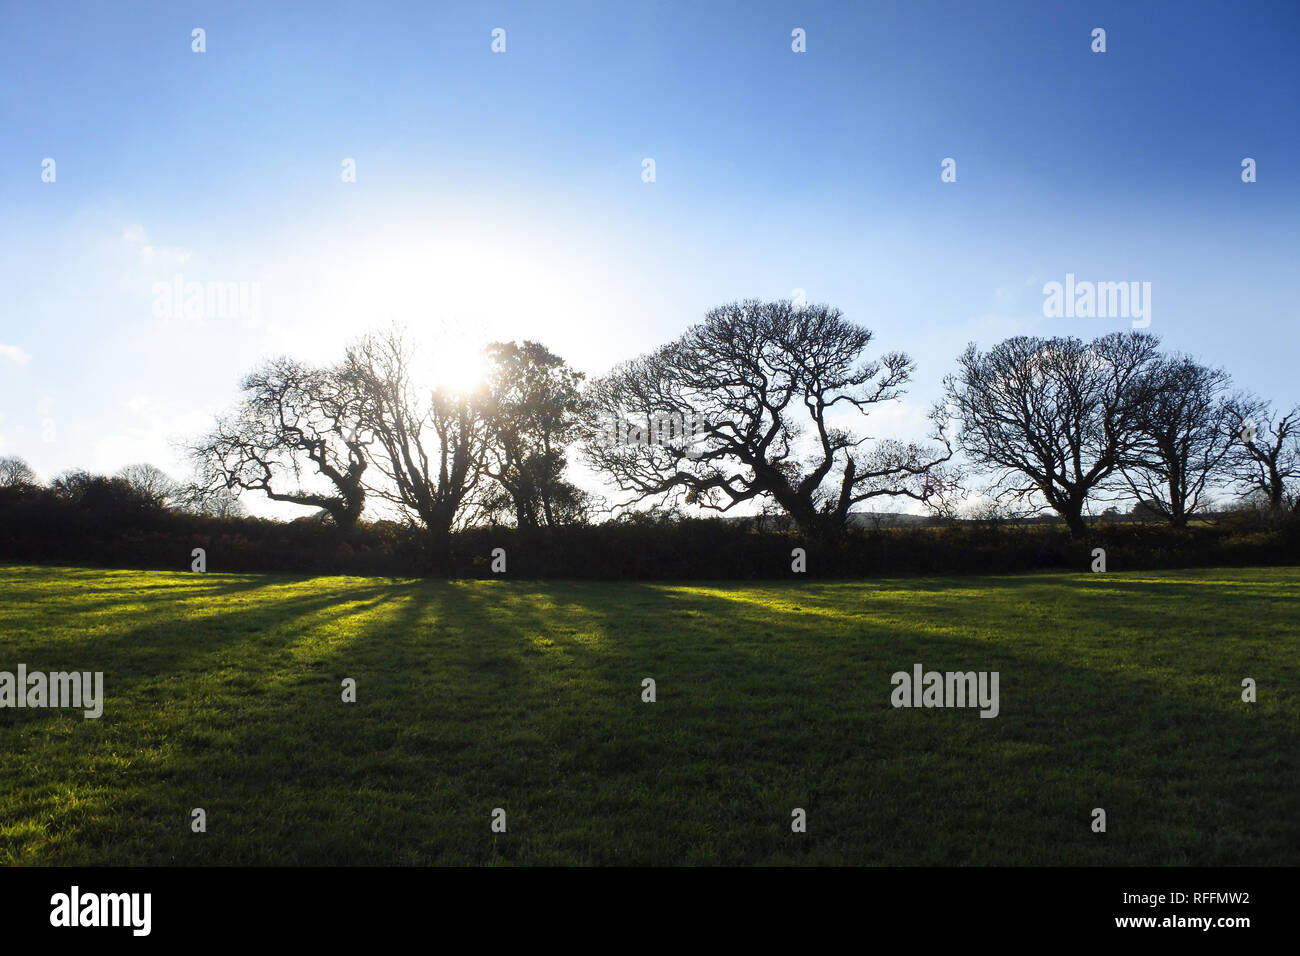 Trees in silhouette against a setting sun - John Gollop - Stock Image